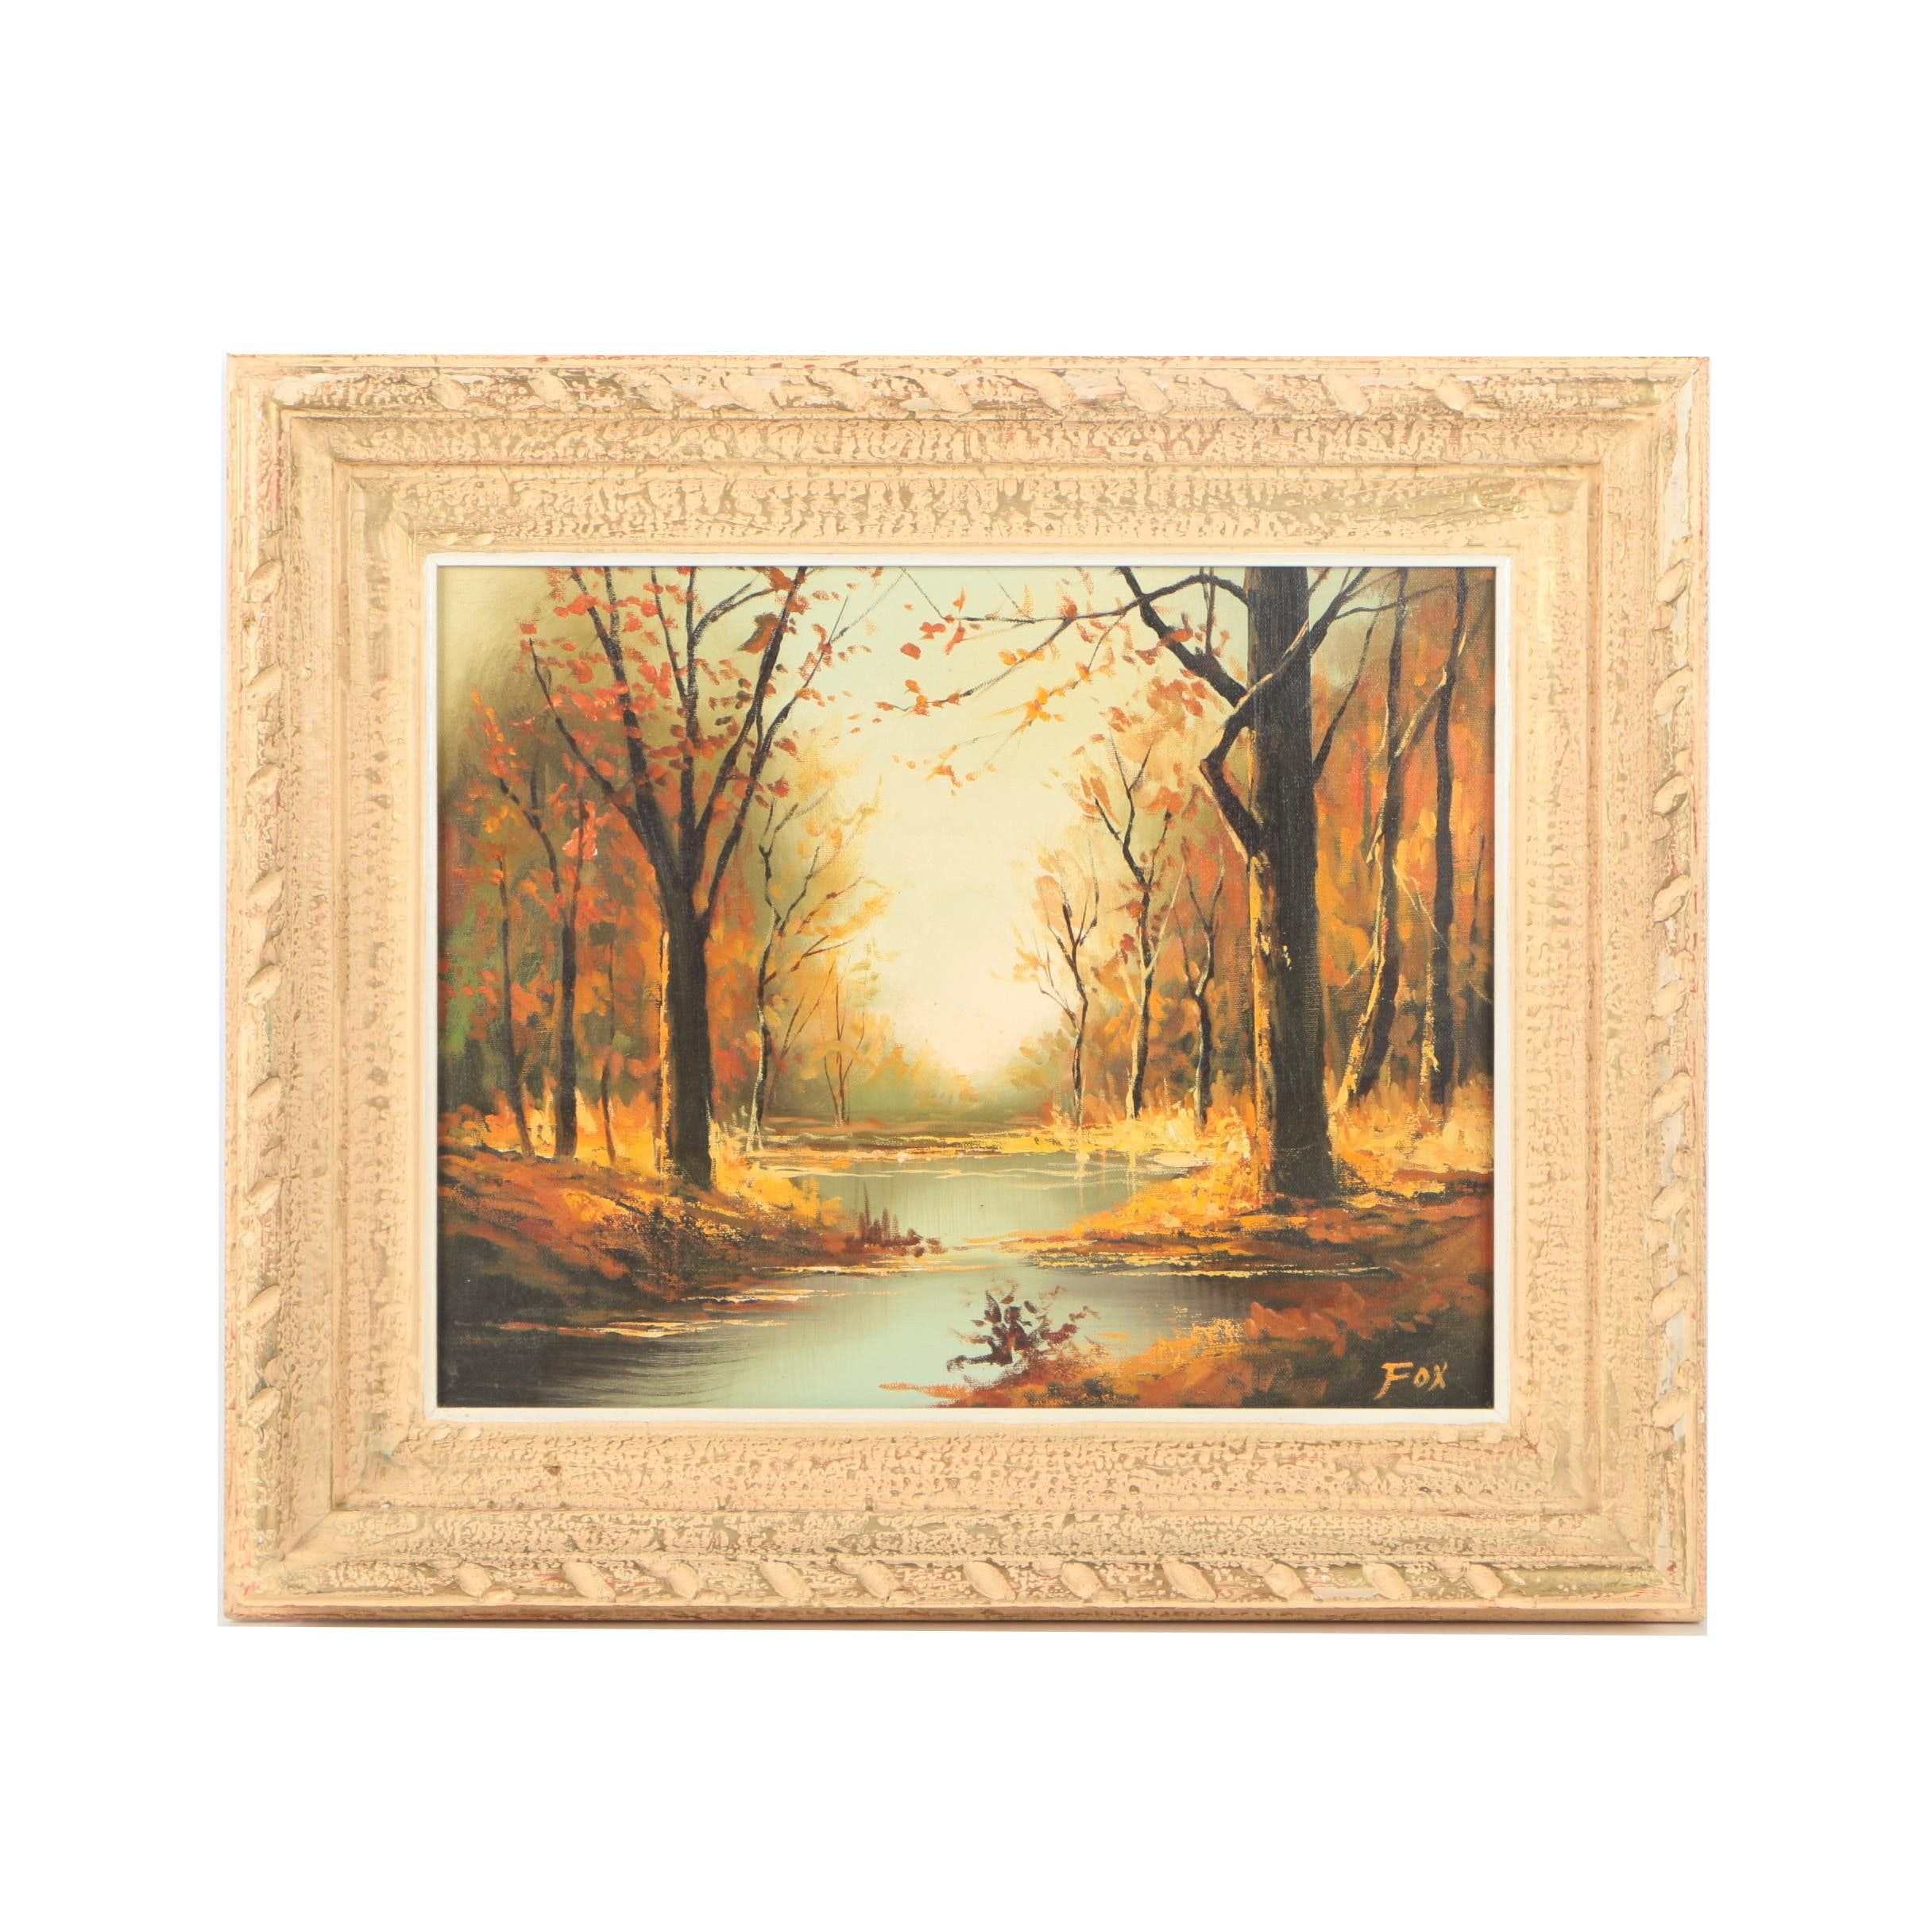 Fox Oil Painting on Canvas of Wooded Scene